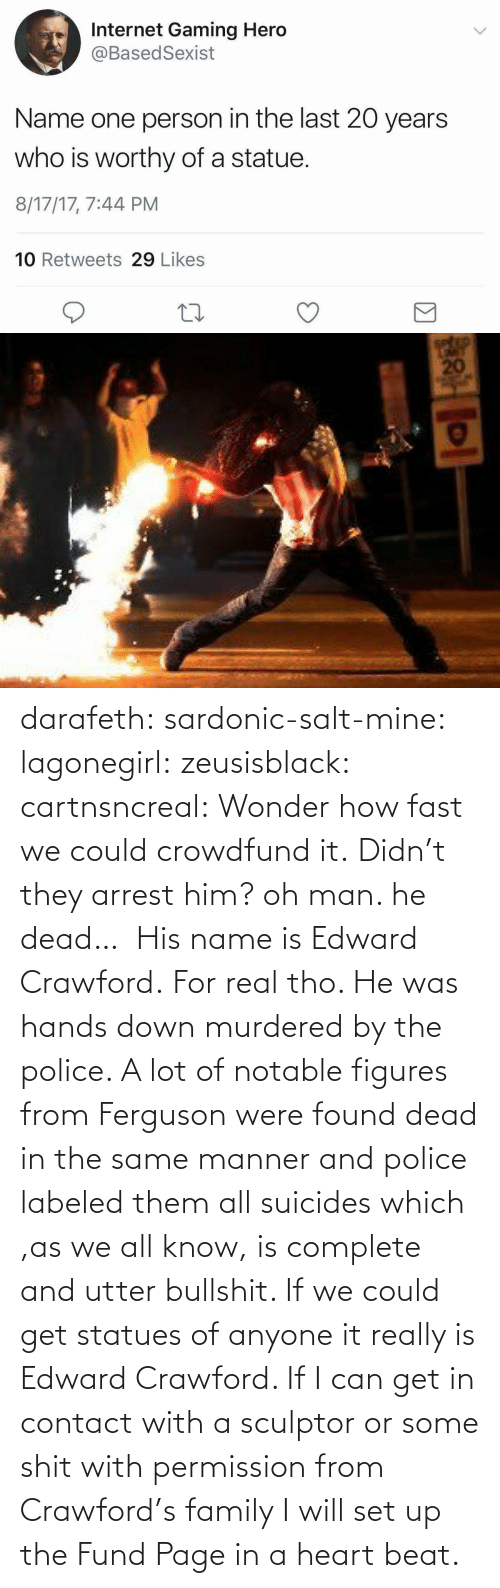 family: darafeth: sardonic-salt-mine:  lagonegirl:  zeusisblack:  cartnsncreal:   Wonder how fast we could crowdfund it.    Didn't they arrest him?  oh man. he dead…   His name is Edward Crawford.   For real tho. He was hands down murdered by the police. A lot of notable figures from Ferguson were found dead in the same manner and police labeled them all suicides which ,as we all know, is complete and utter bullshit.  If we could get statues of anyone it really is Edward Crawford. If I can get in contact with a sculptor or some shit with permission from Crawford's family I will set up the Fund Page in a heart beat.